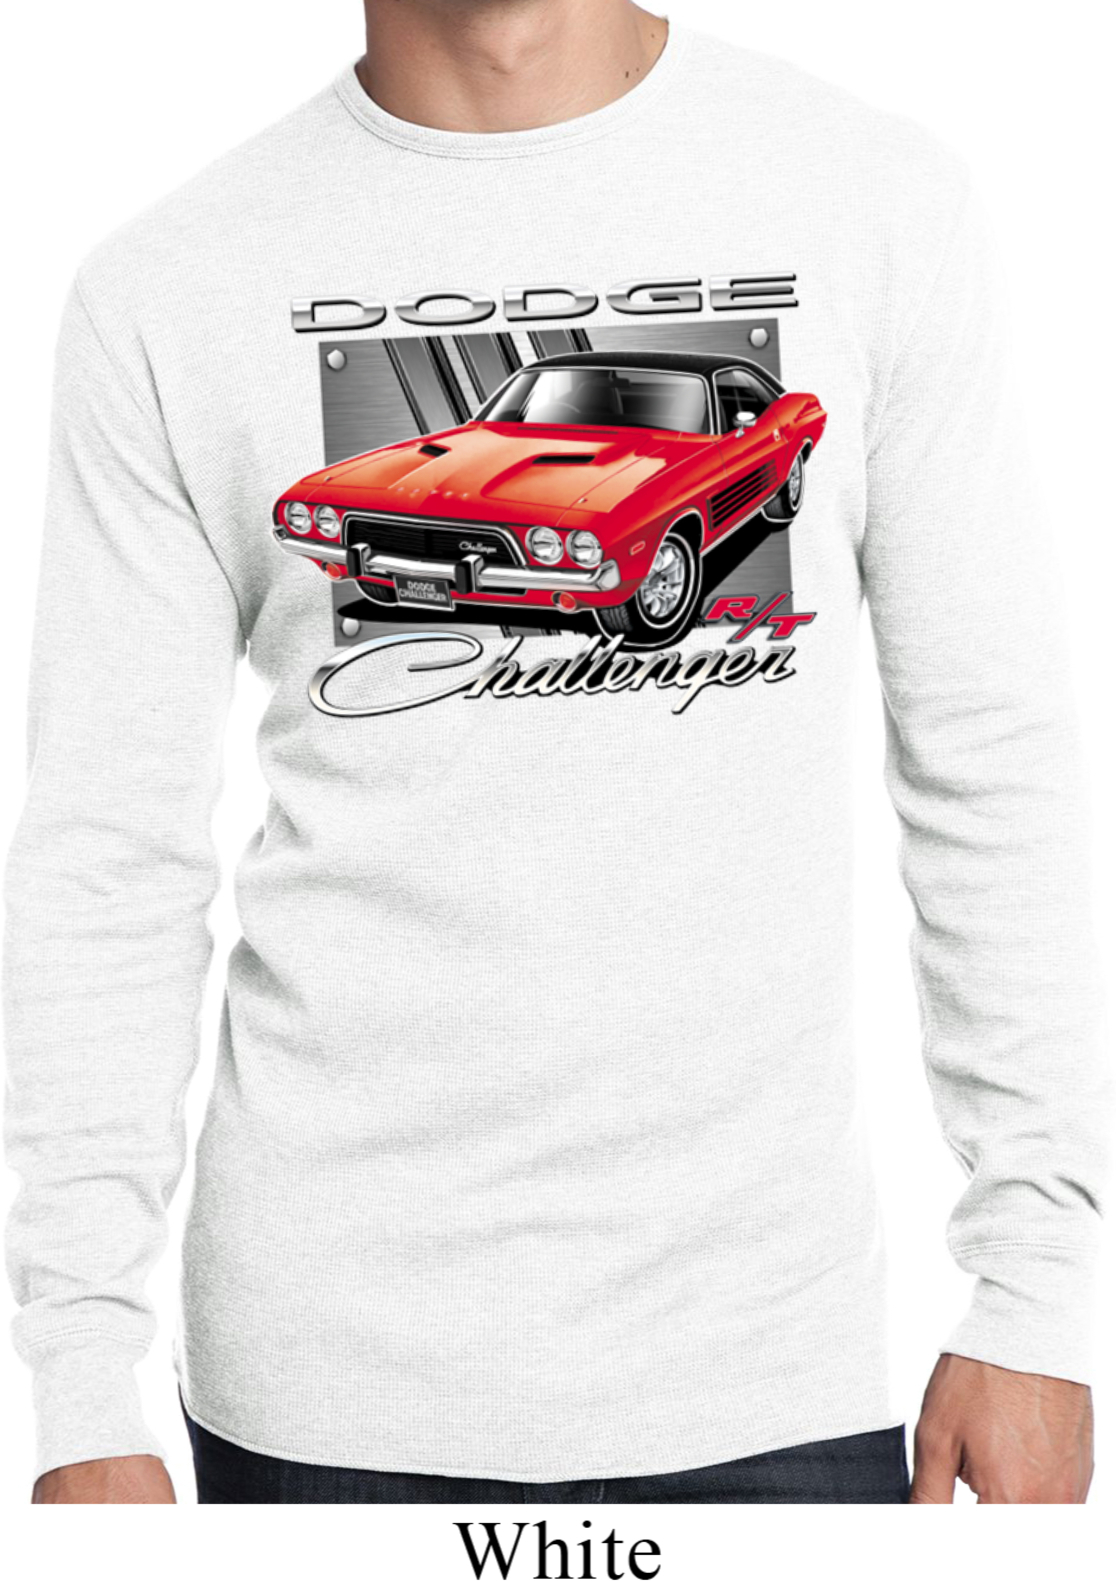 Mens Dodge Shirt Red Challenger White Long Sleeve Thermal